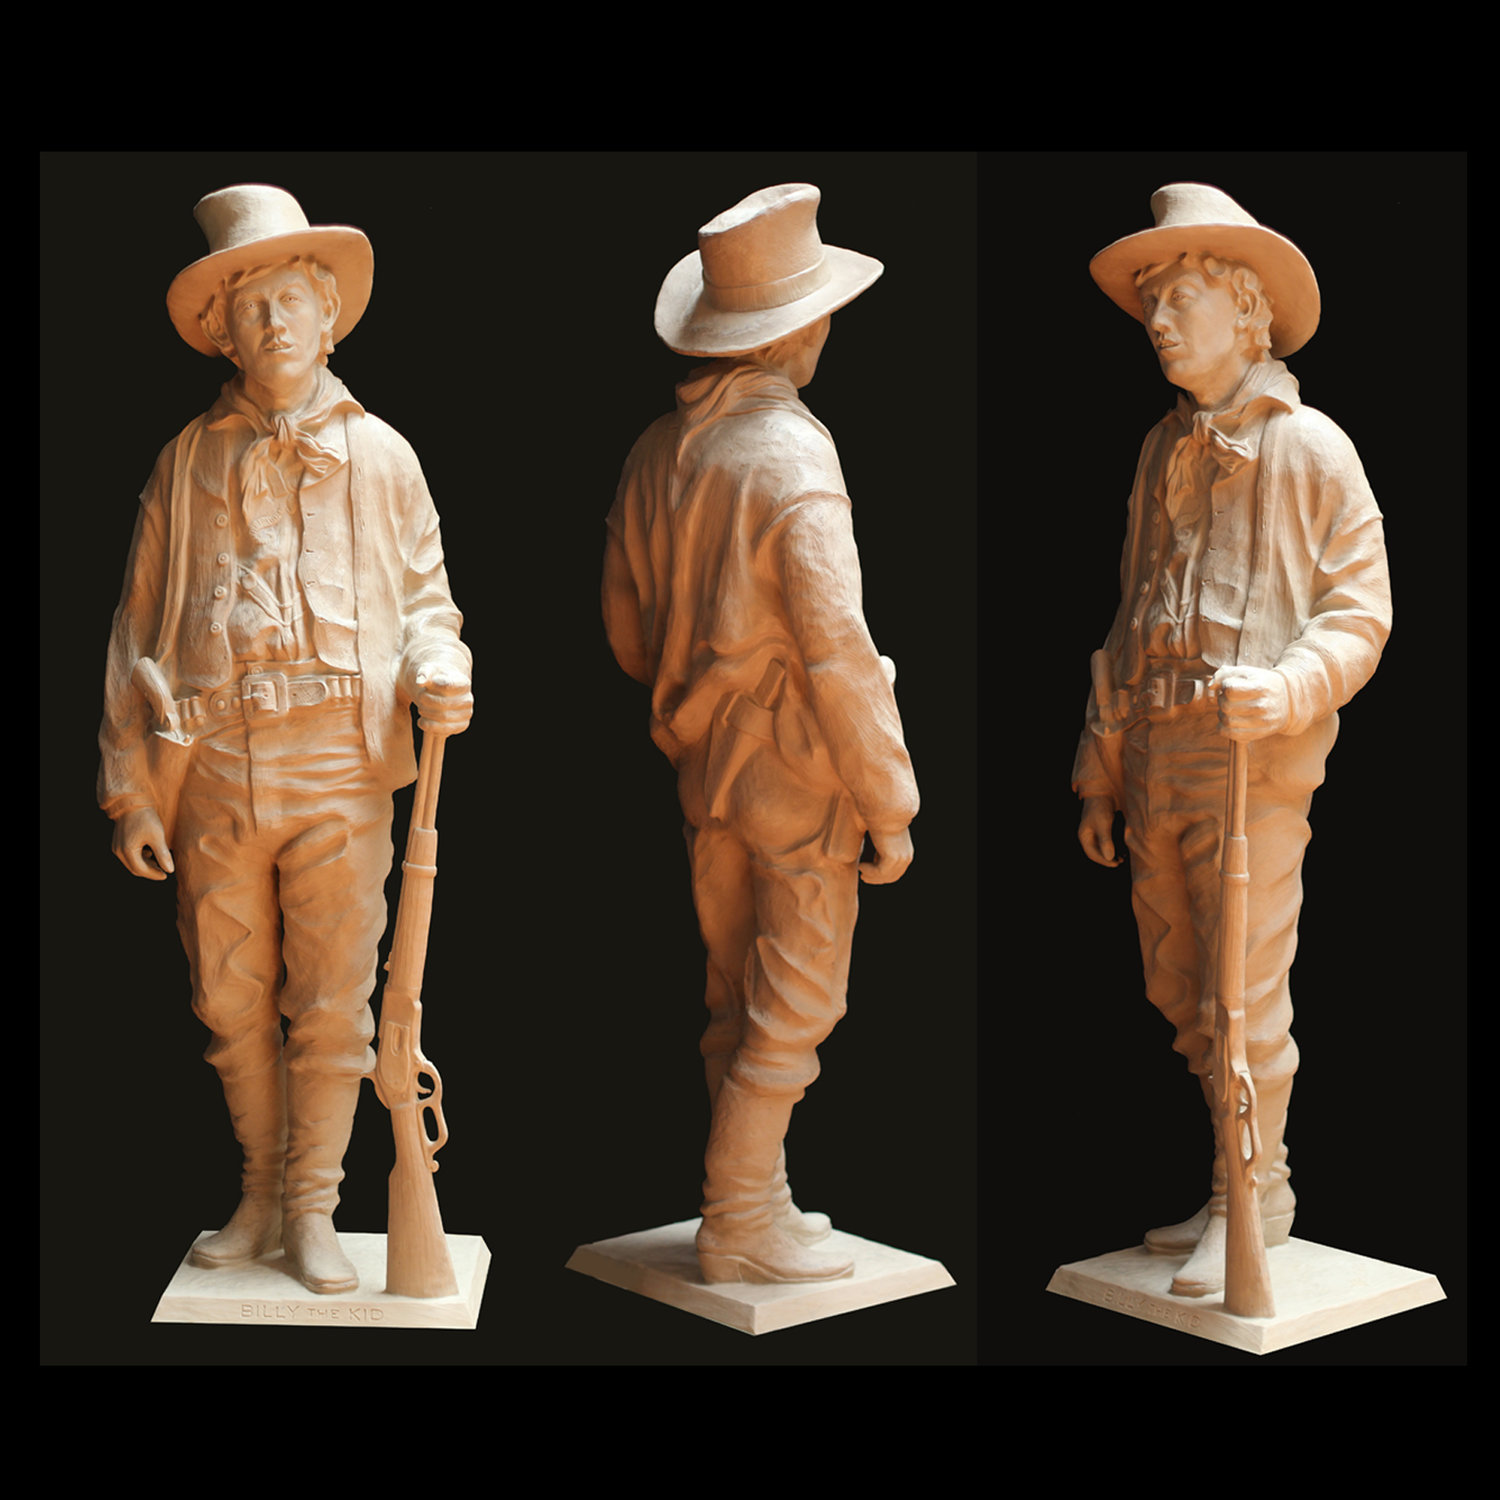 Bob Diven's Billy the Kid sculpture.